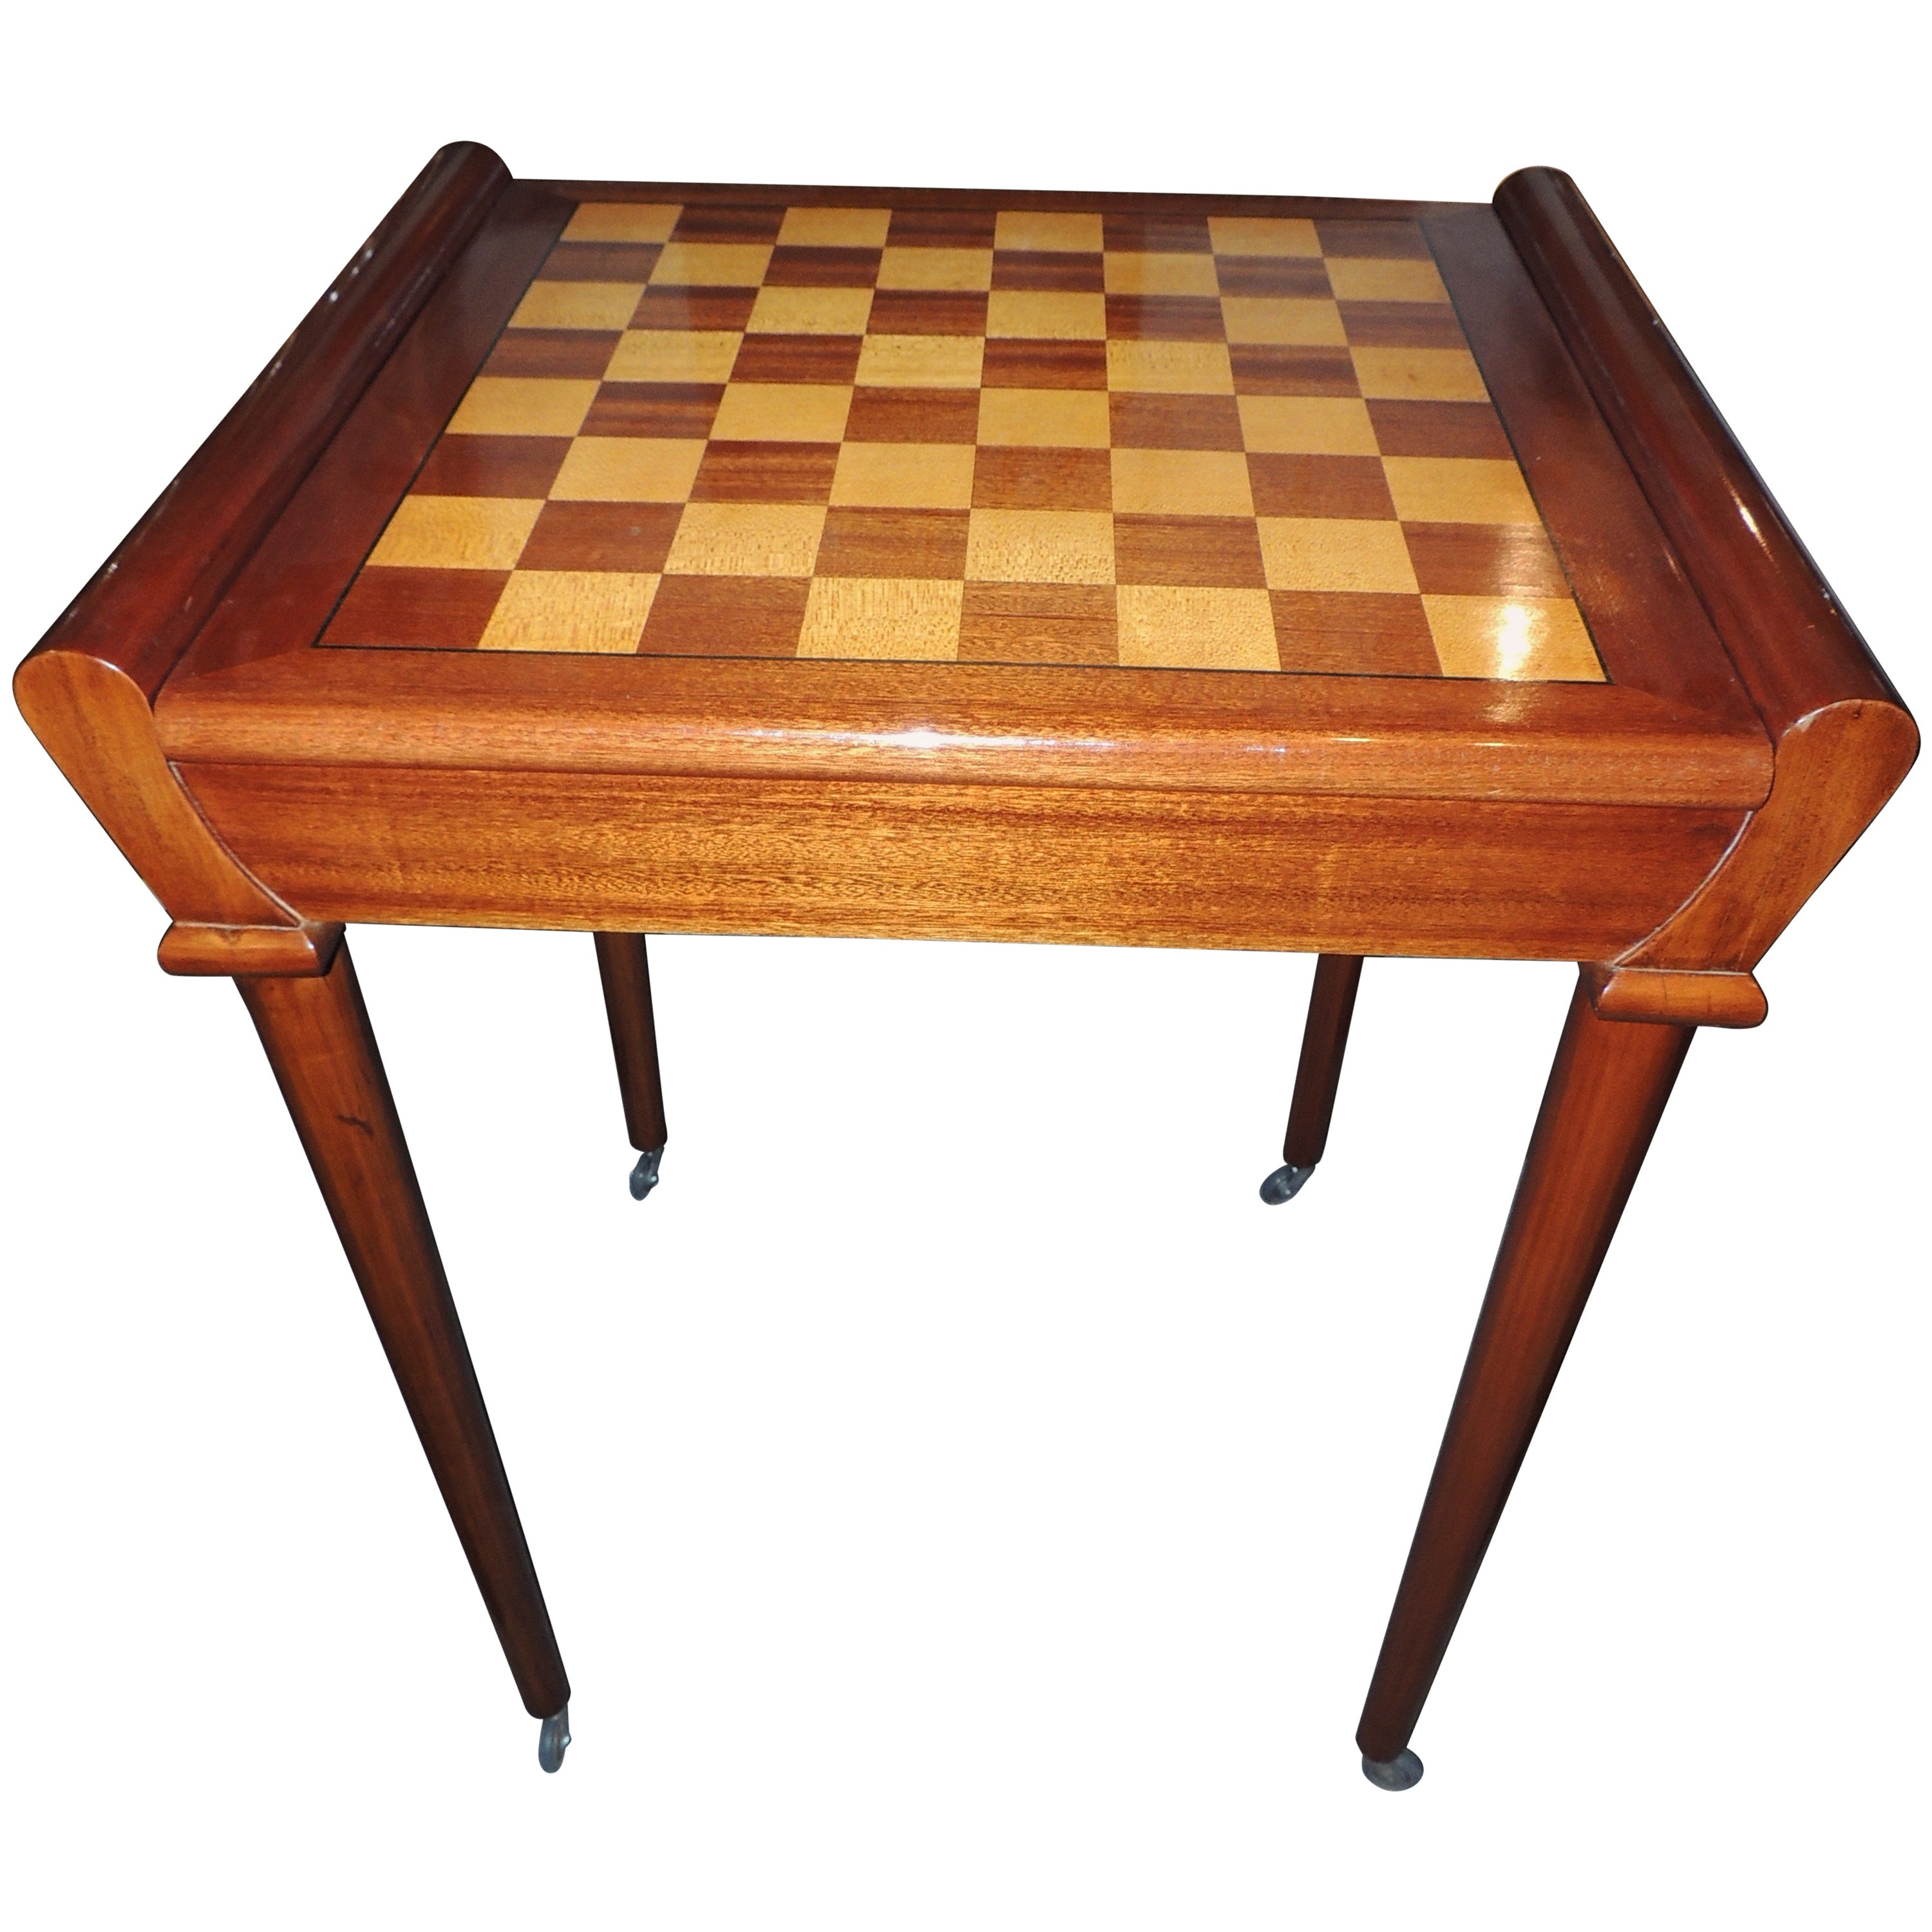 Beau Art Deco Game Table Complete With Chess, Roulette And More At 1stdibs